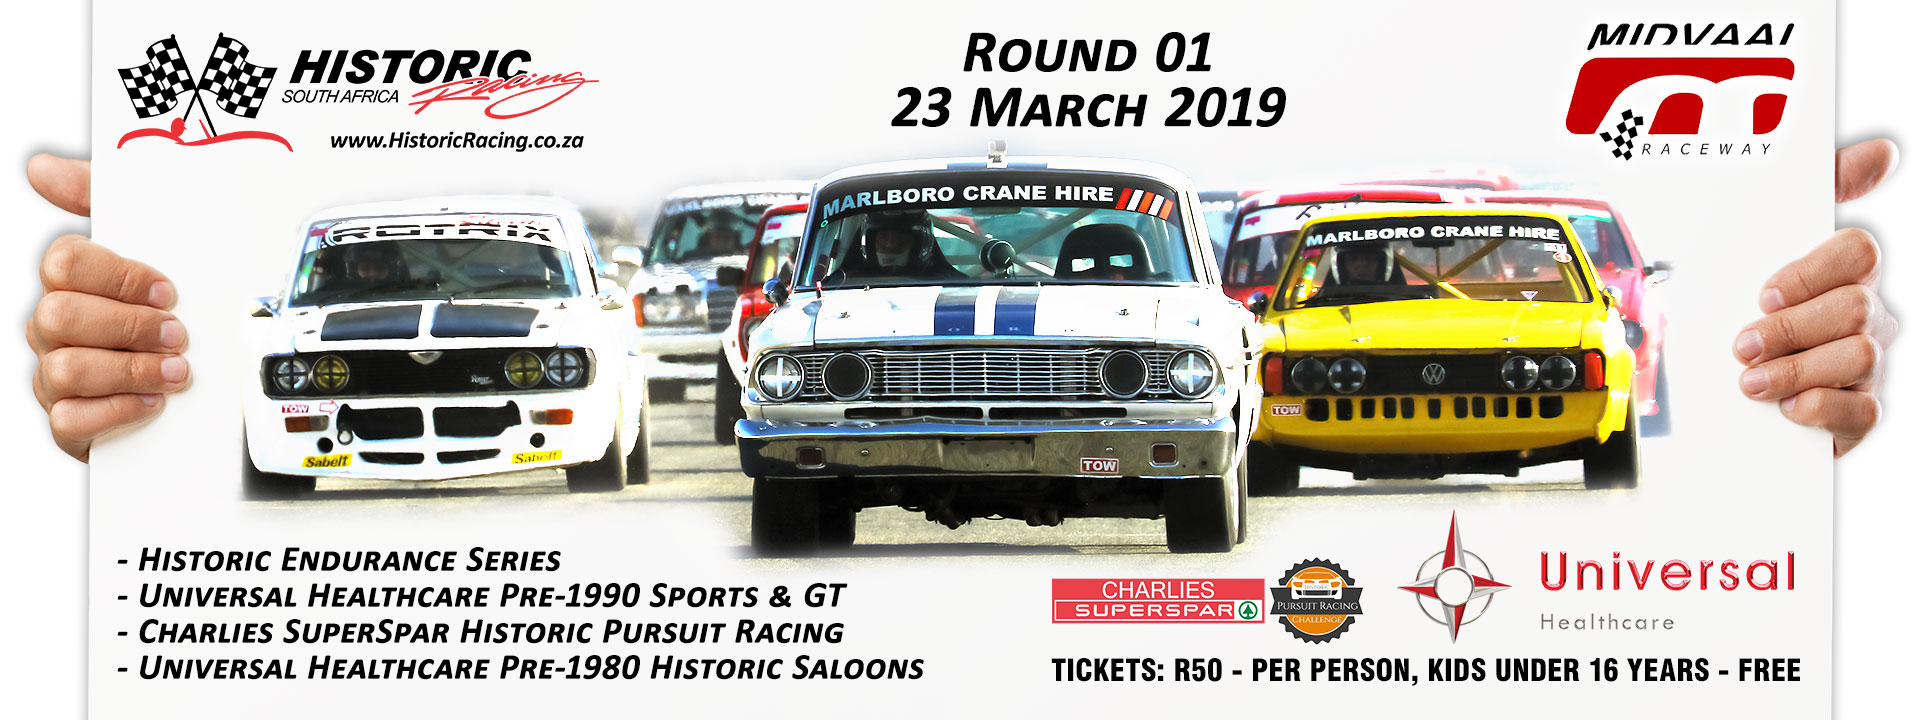 Round 01 - 23 March 2019 - Midvaal Raceway